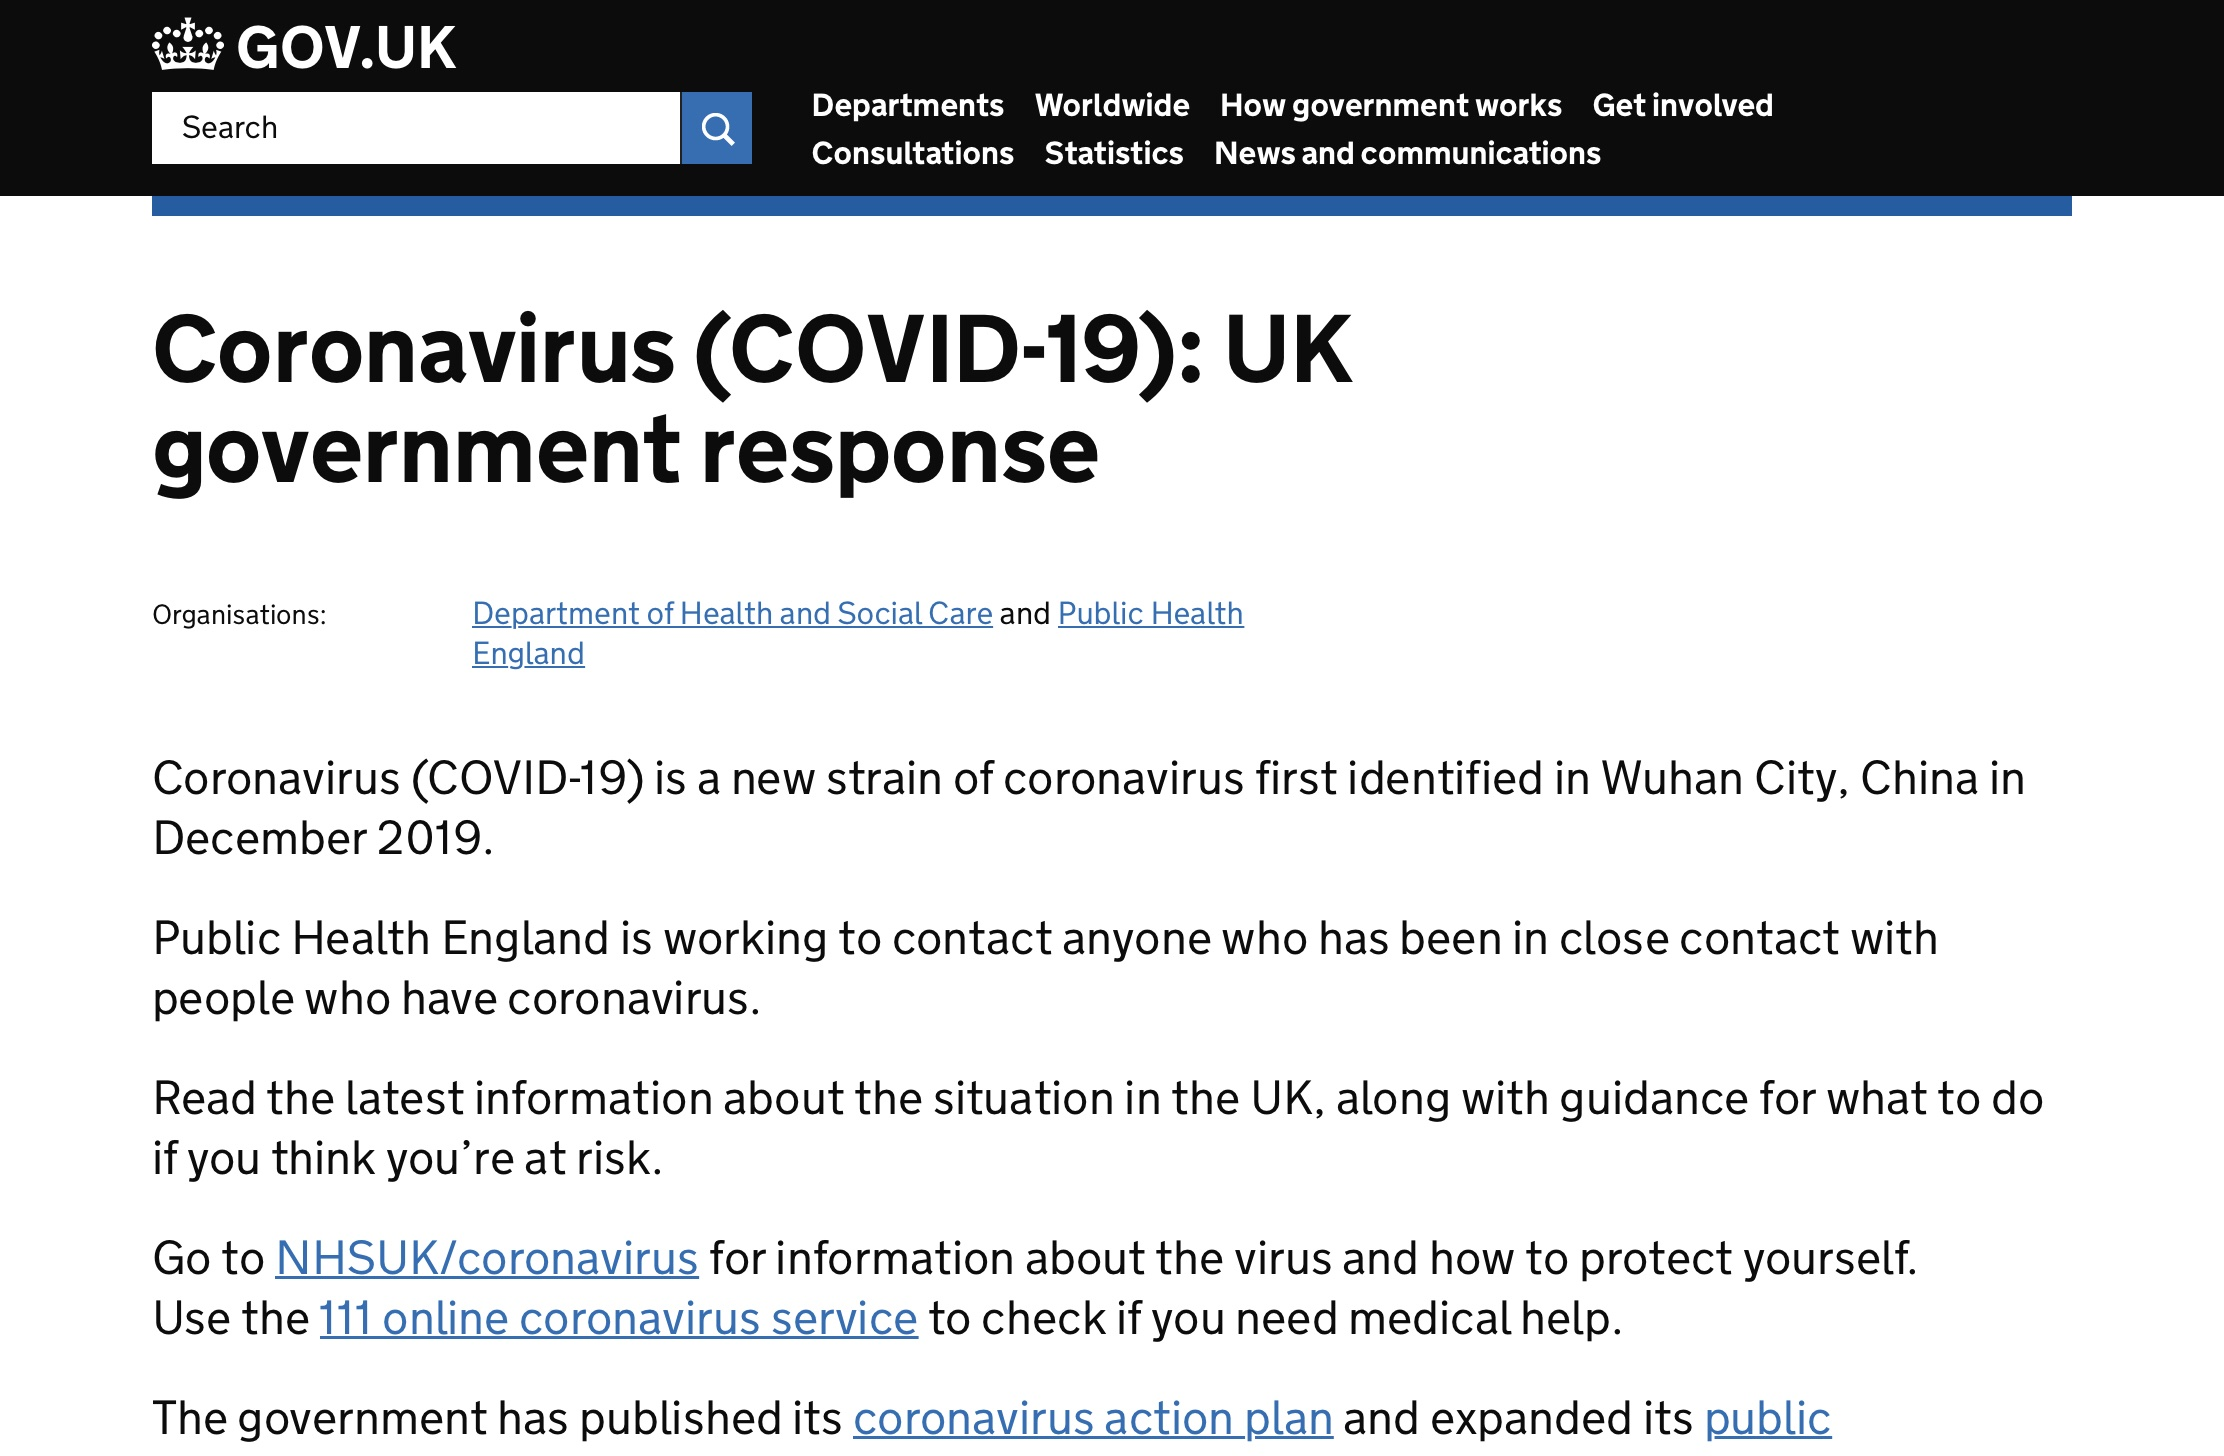 These YouTube desktop notifications direct UK users to a government coronavirus response page